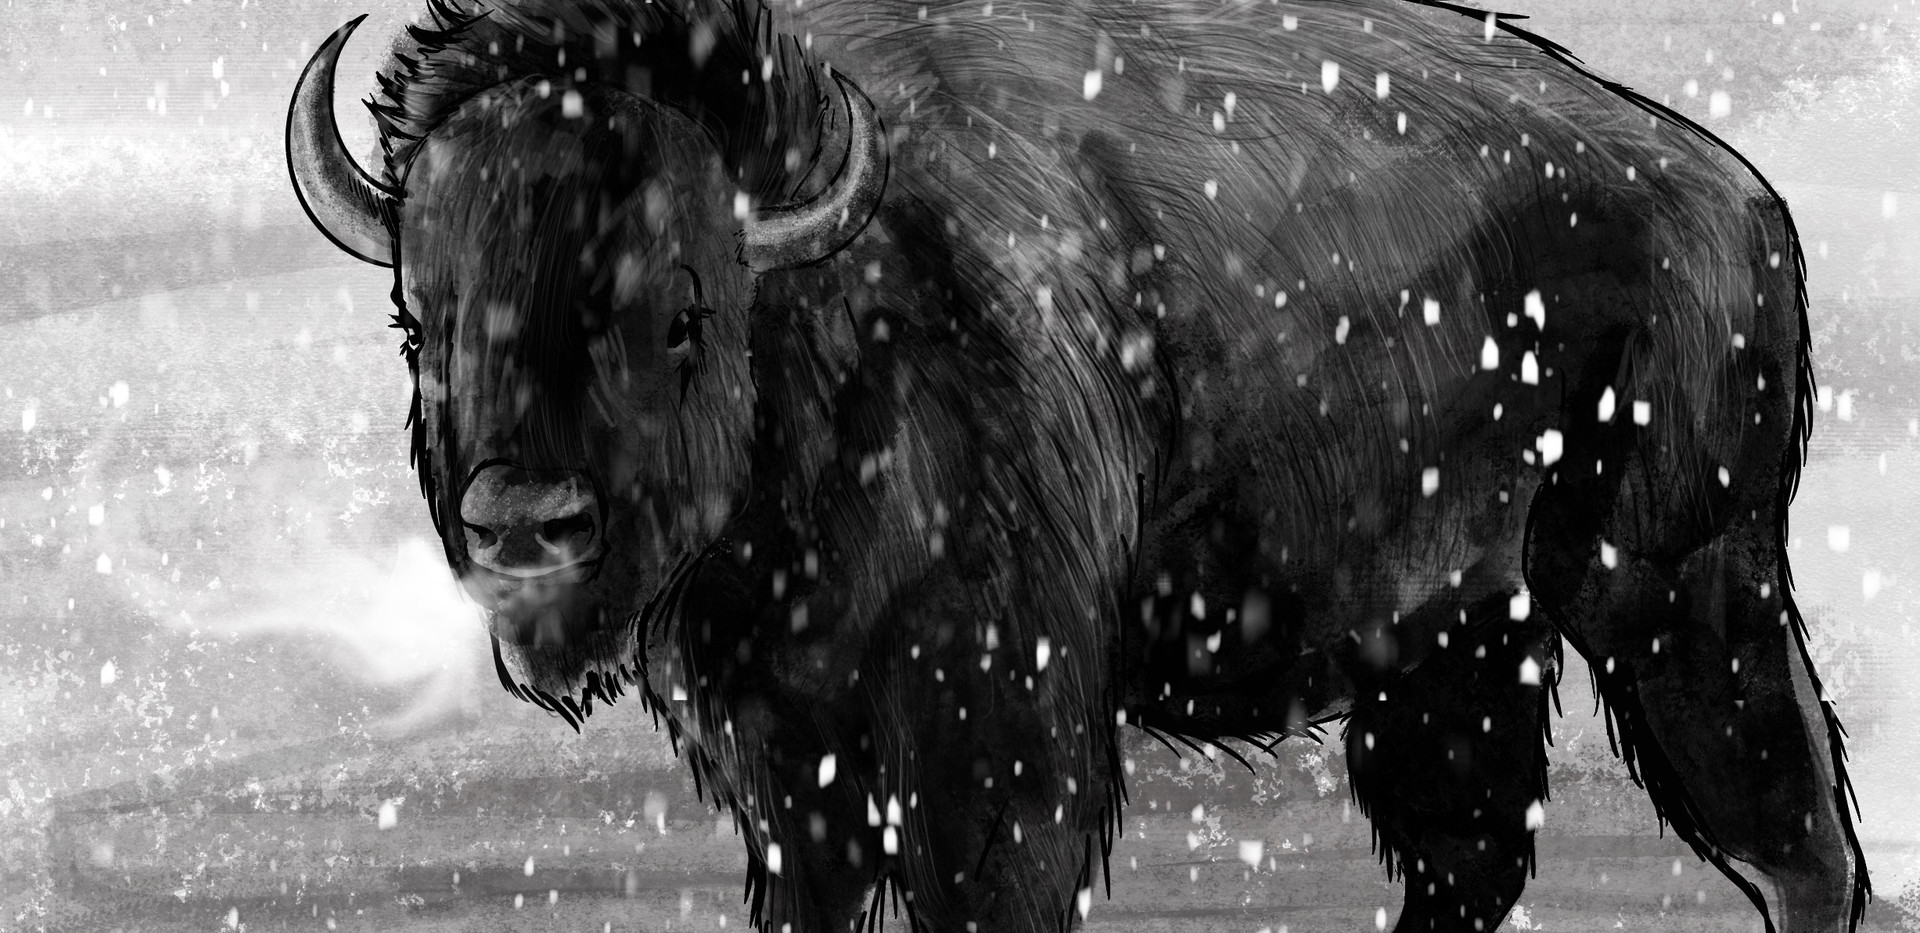 Joseph Grice Buffalo Digital Illustration